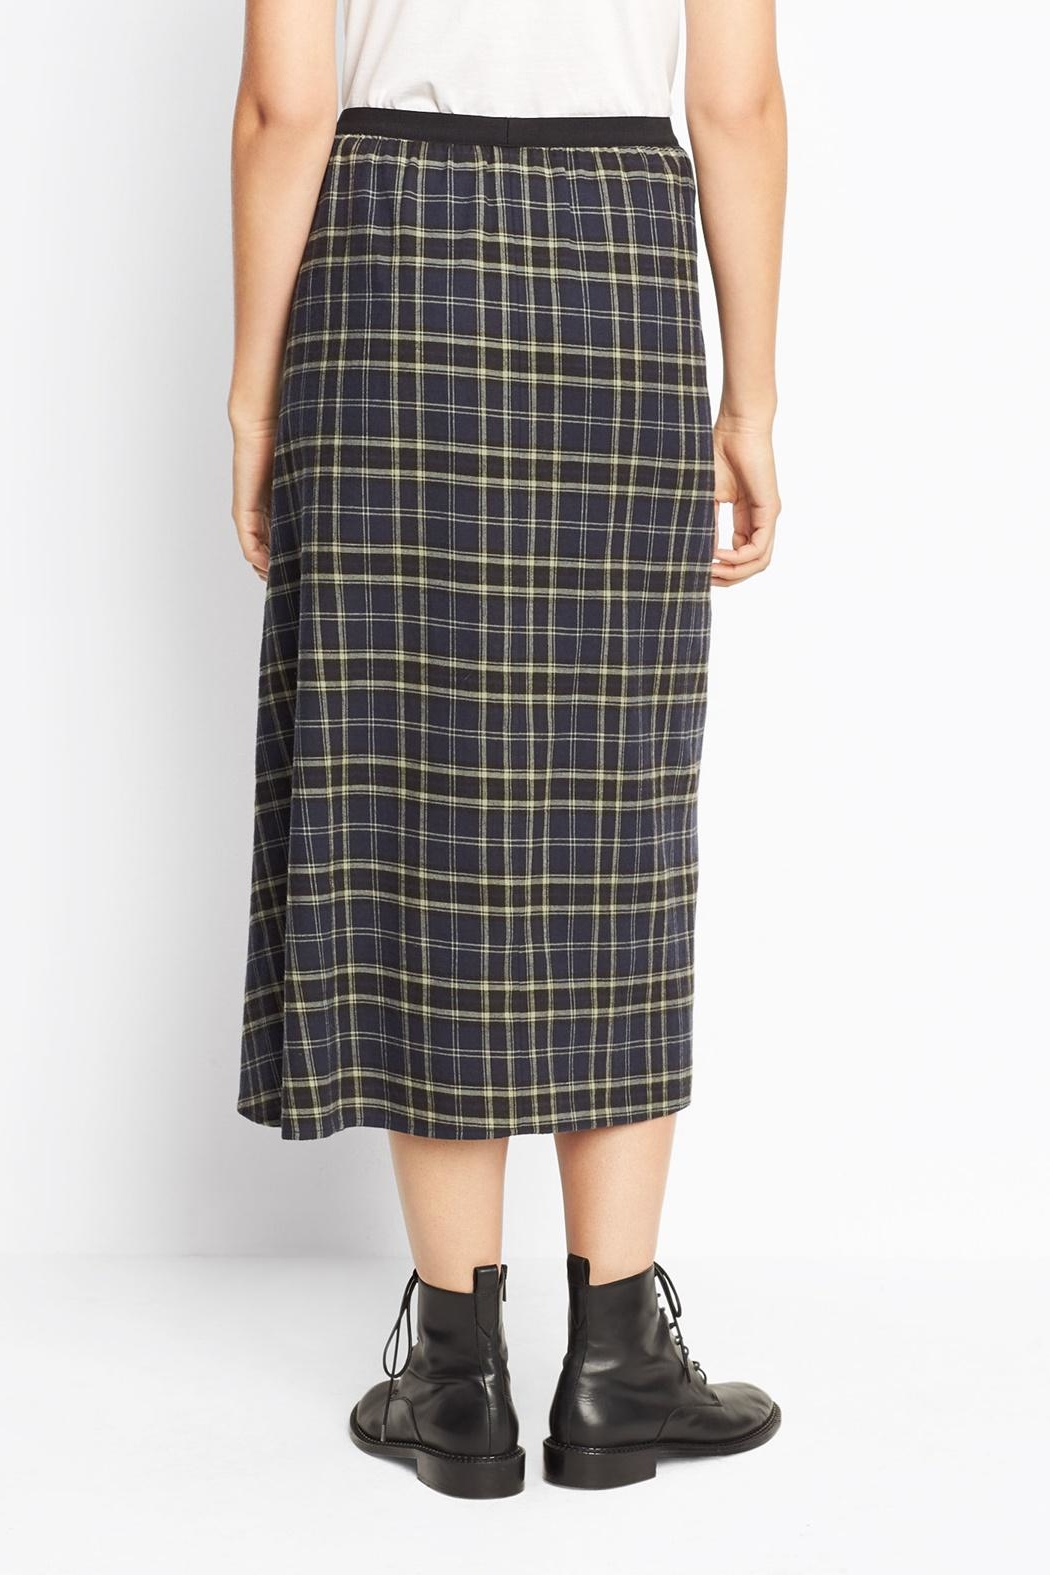 Vince Multi Plaid Skirt - Side Cropped Image